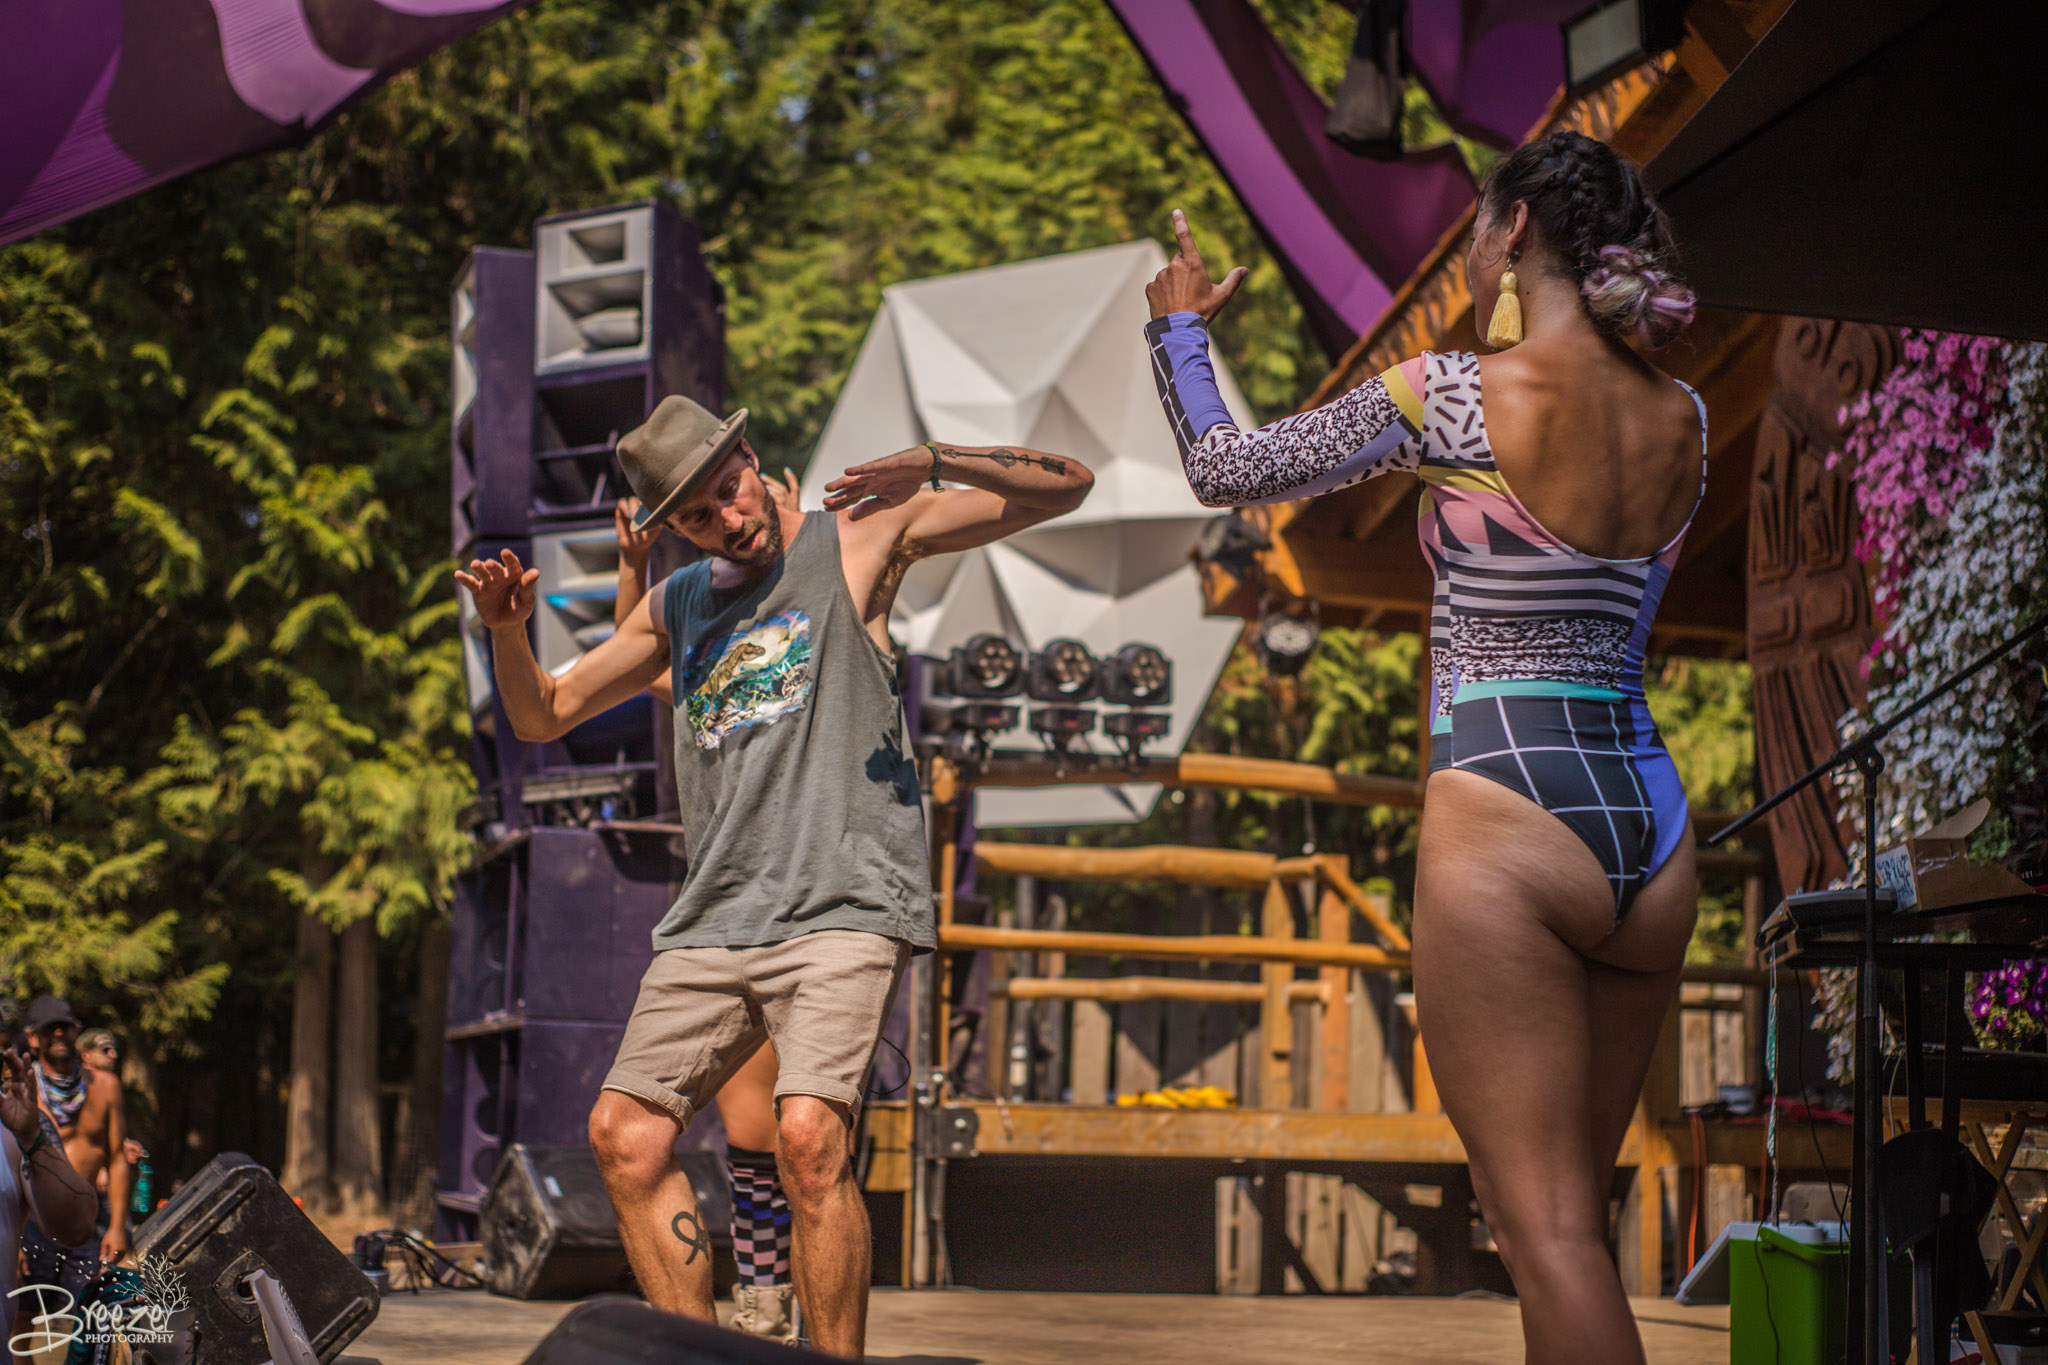 Brie'Ana Breeze Photography & Media - Shambhala 2018-0534.jpg